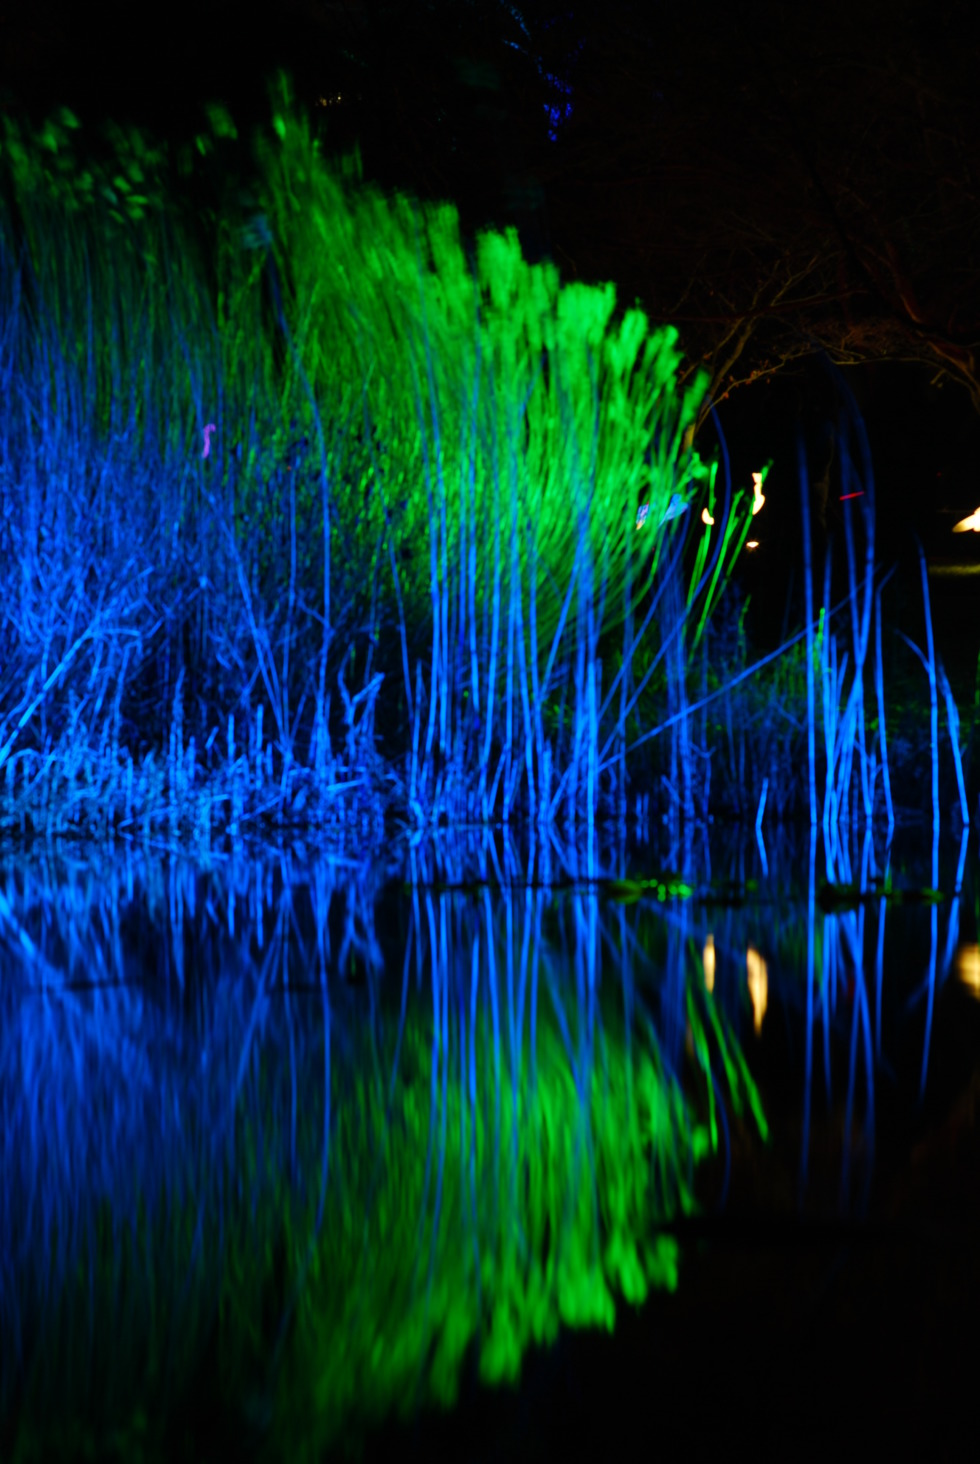 Lighted reed mirroring in water